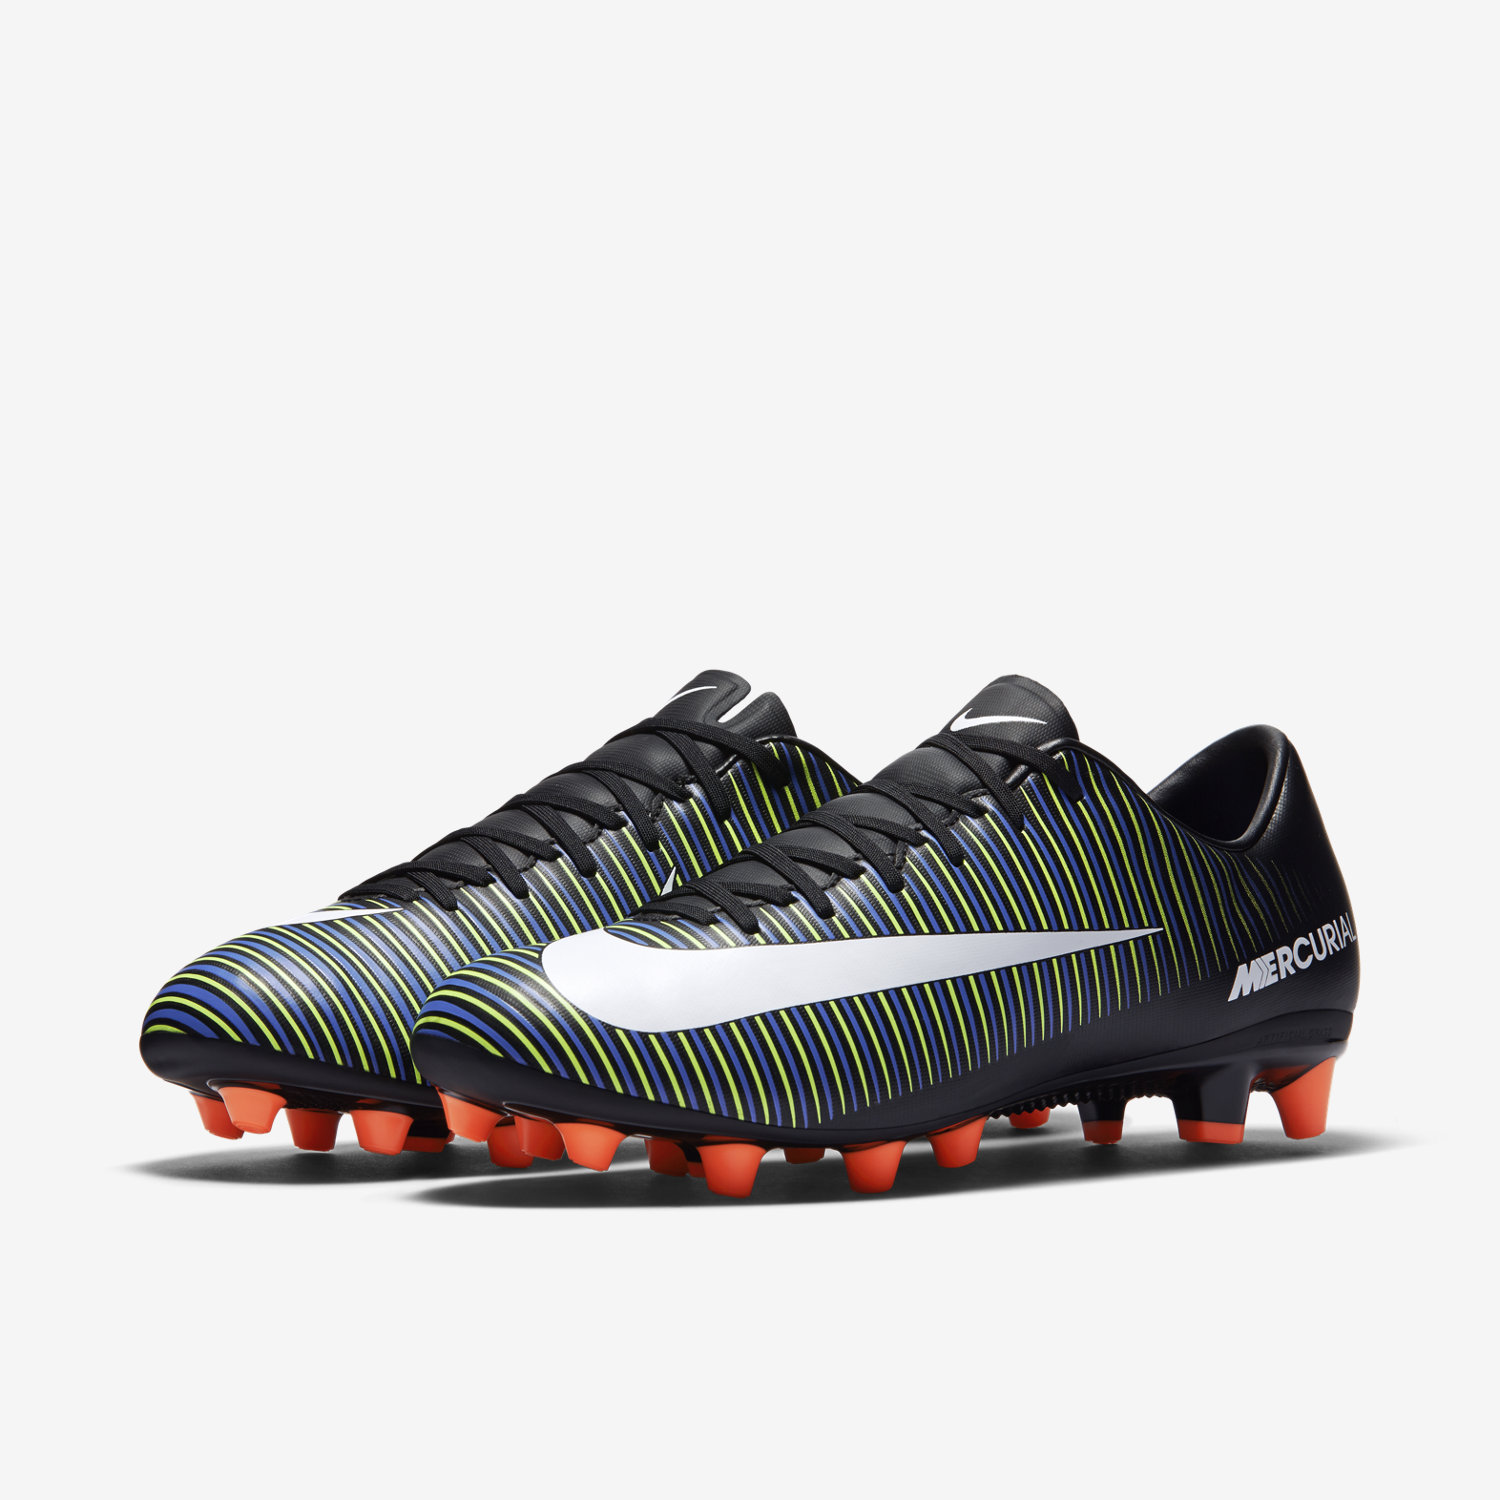 ... pink black white nike mercurial victory vi ag pro artificial grass  football boot. nike au ...